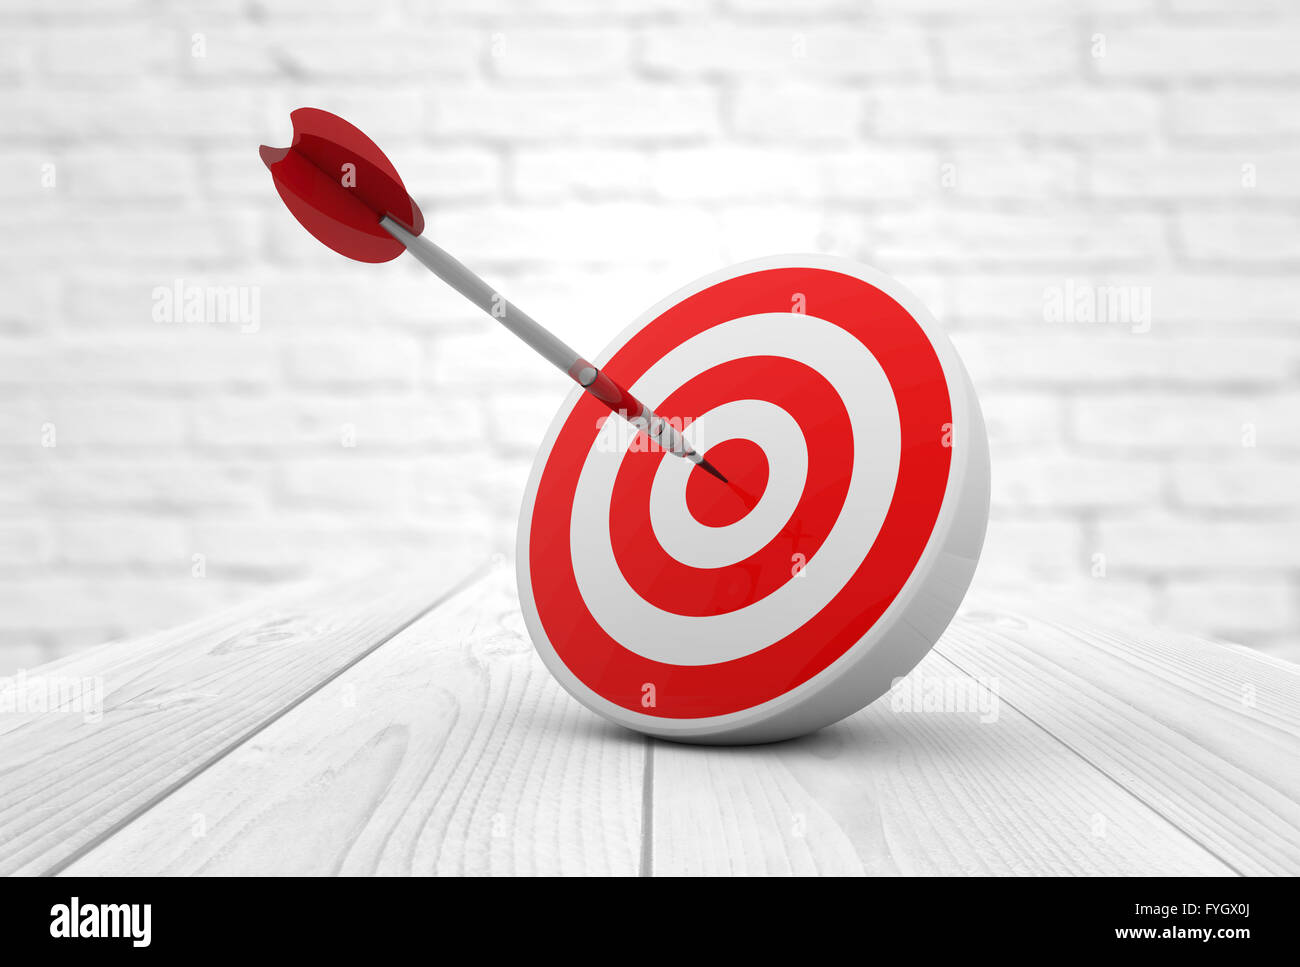 strategic business solutions or corporate strategy concept: digital generated dart in the center of a red target, - Stock Image